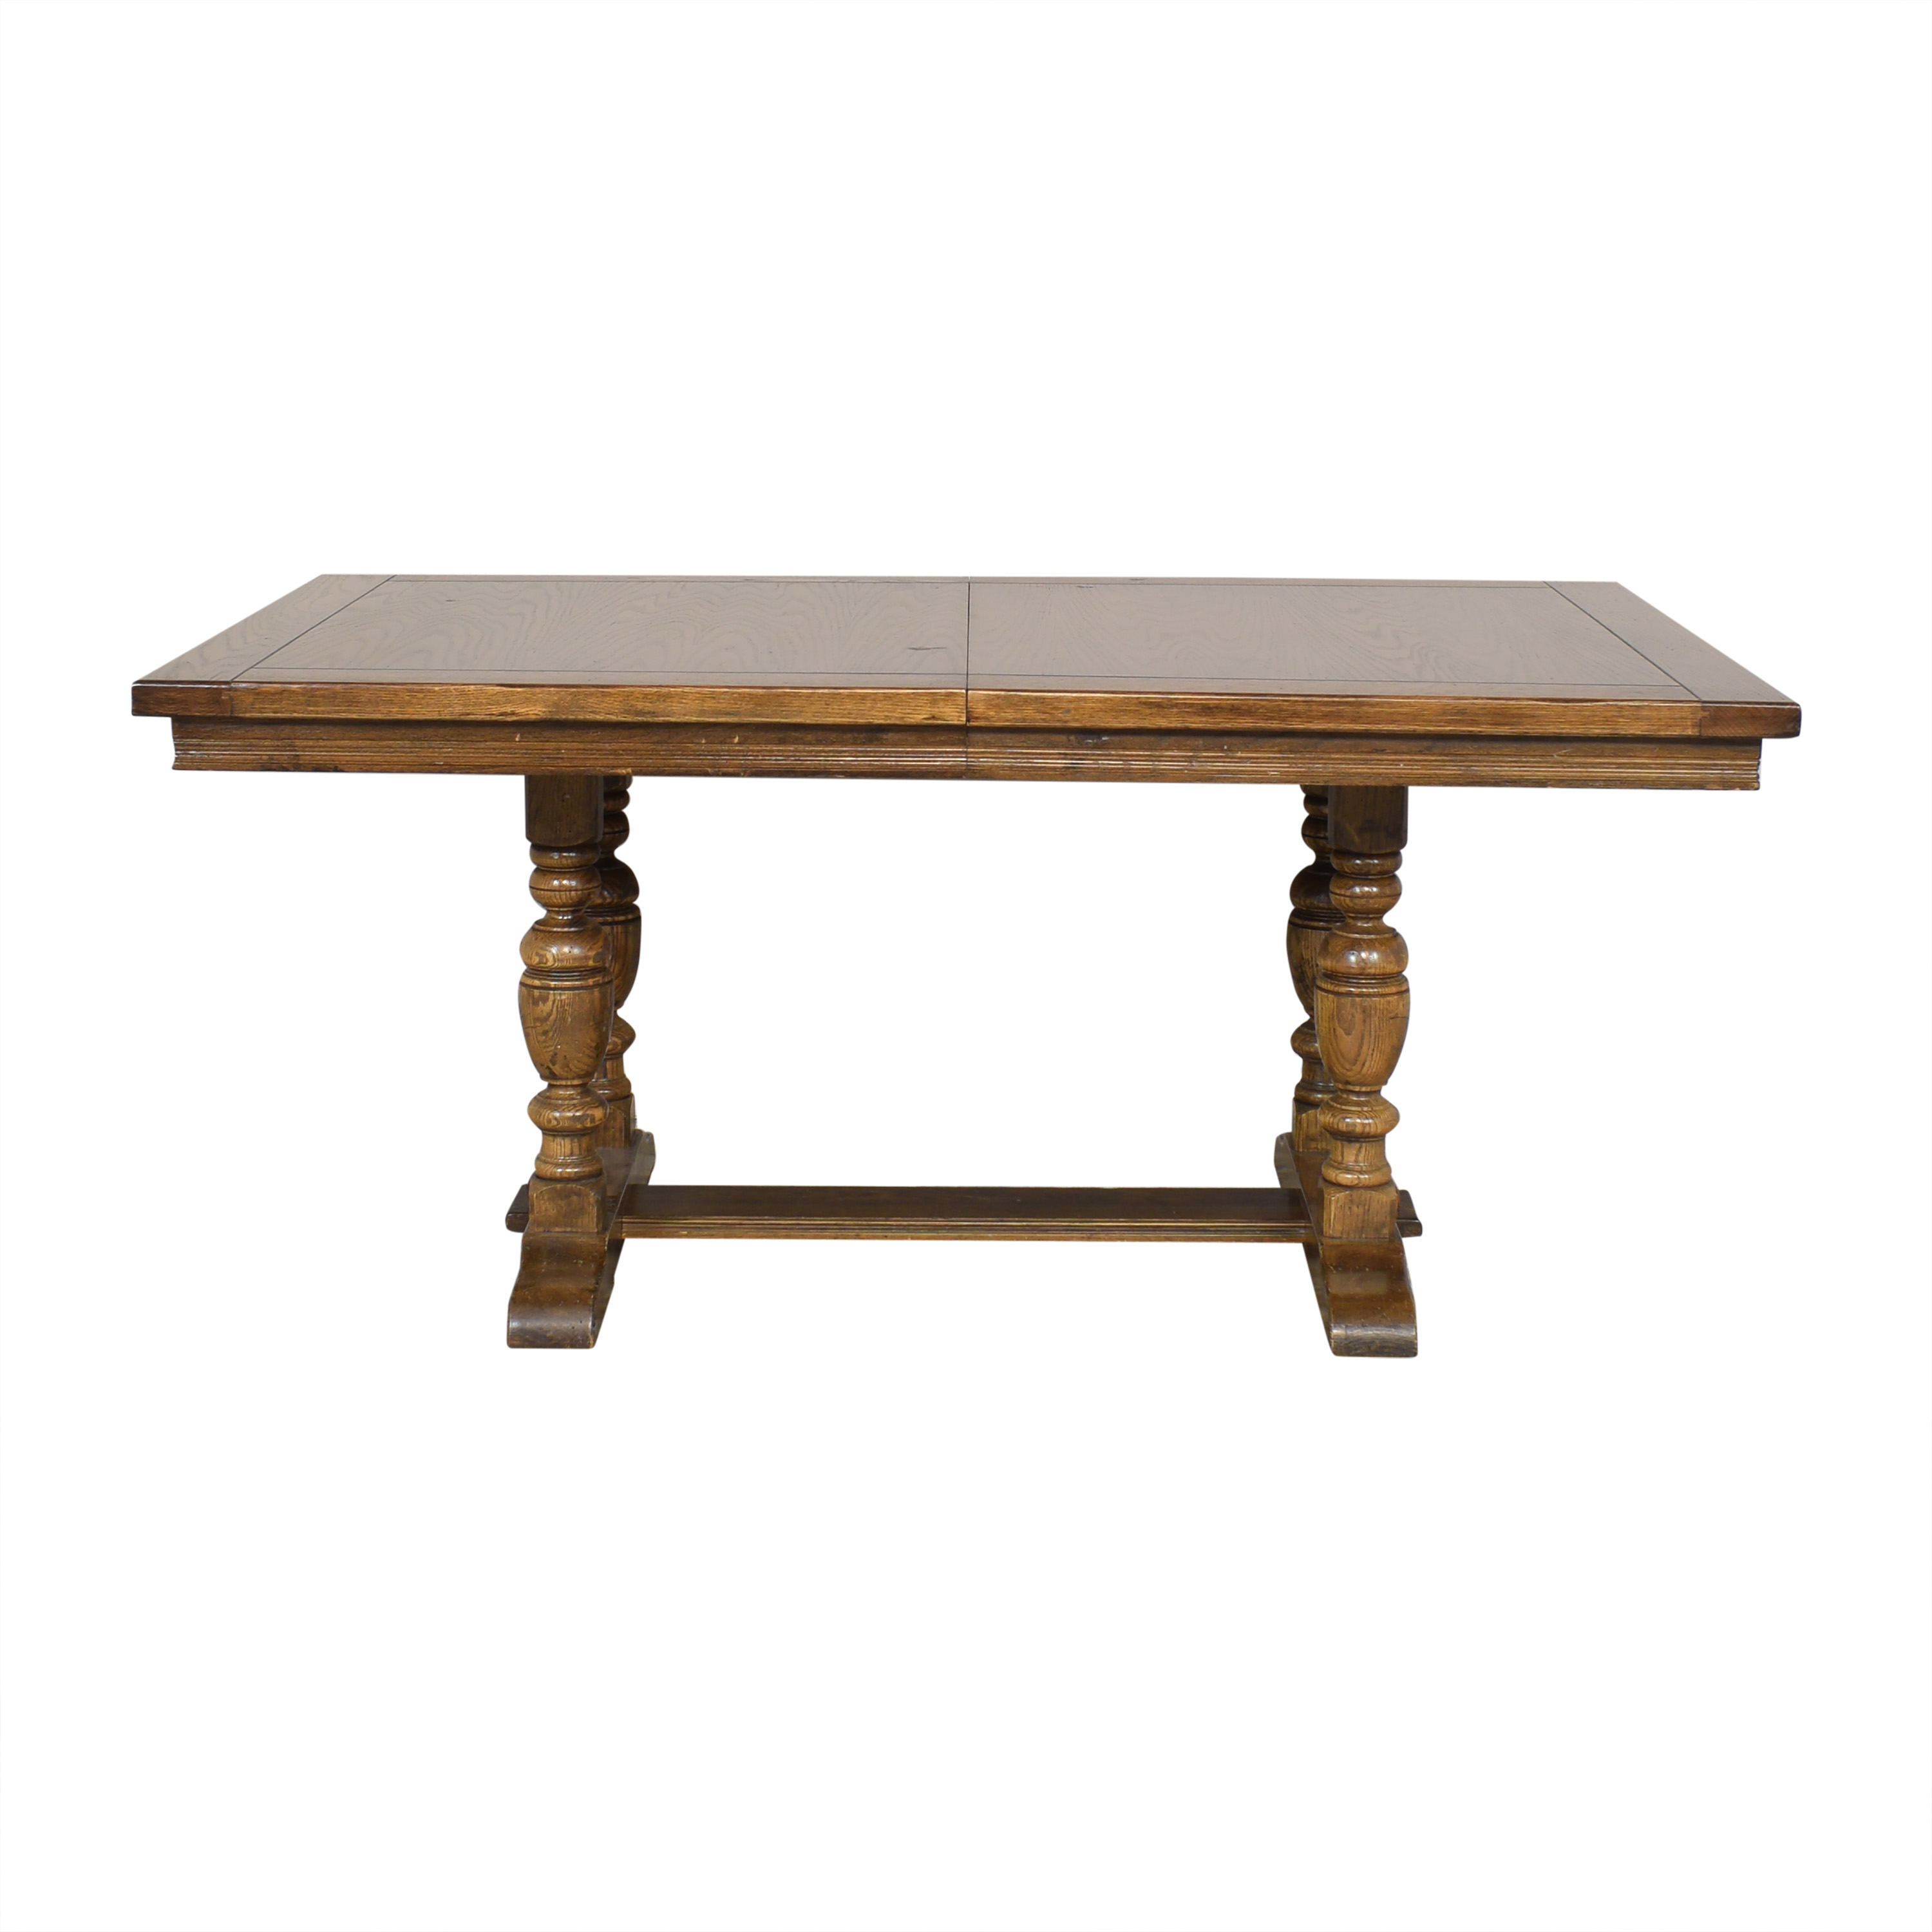 Ethan Allen Ethan Allen Royal Charter Extendable Dining Table price